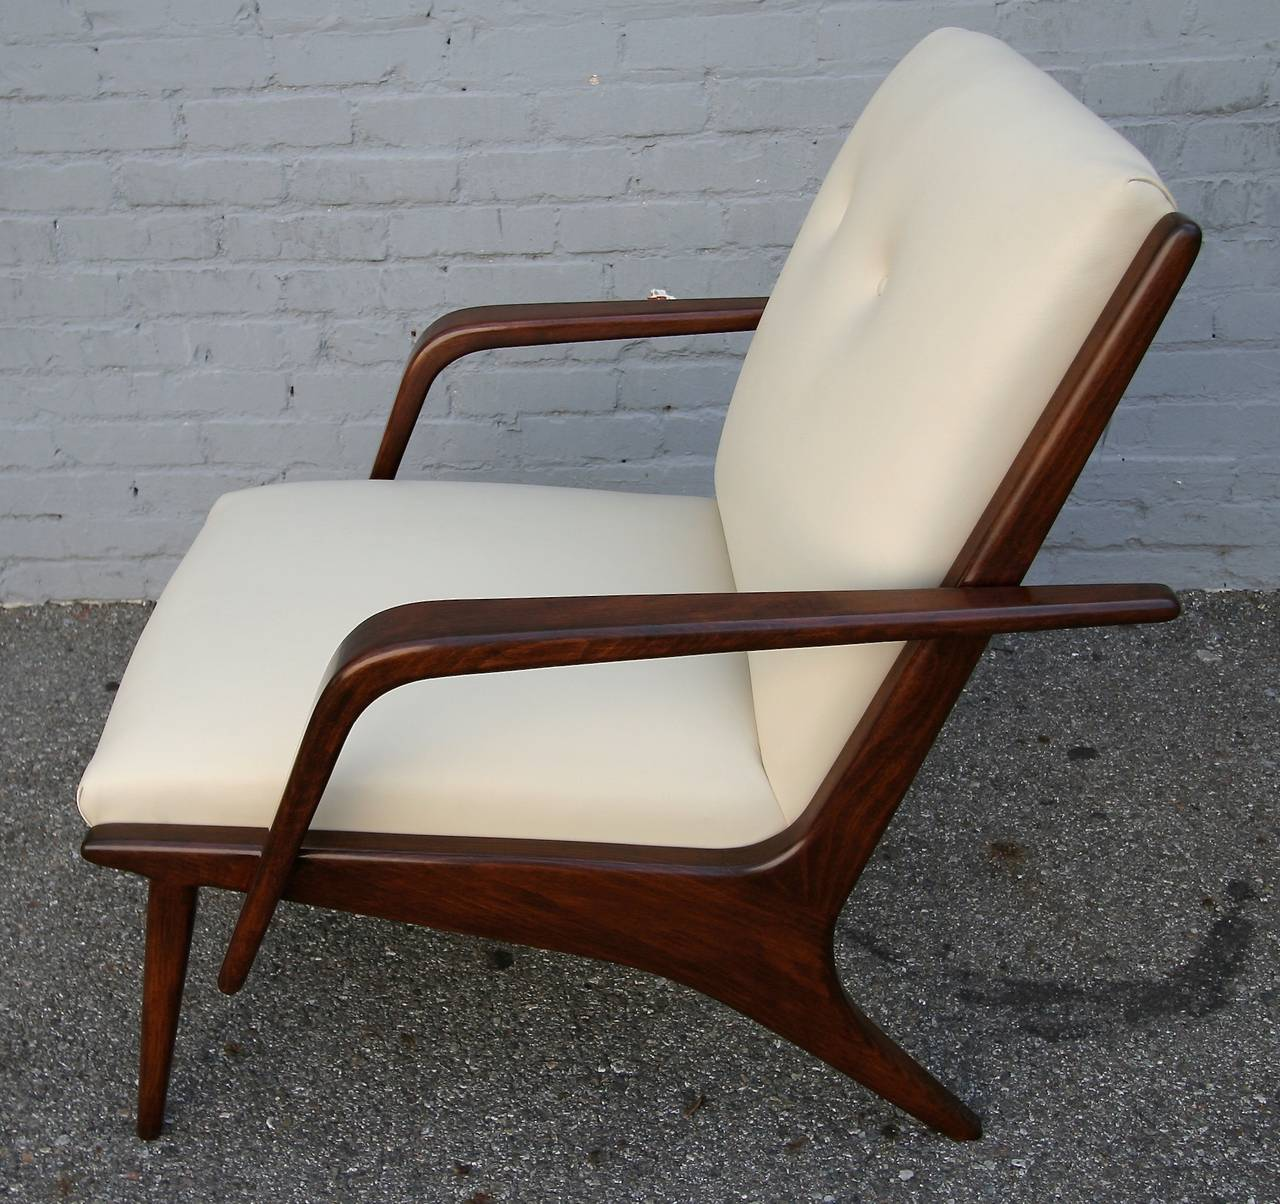 Pair of 1960s armchairs by Giuseppe Scapinelli, upholstered in beige leather.